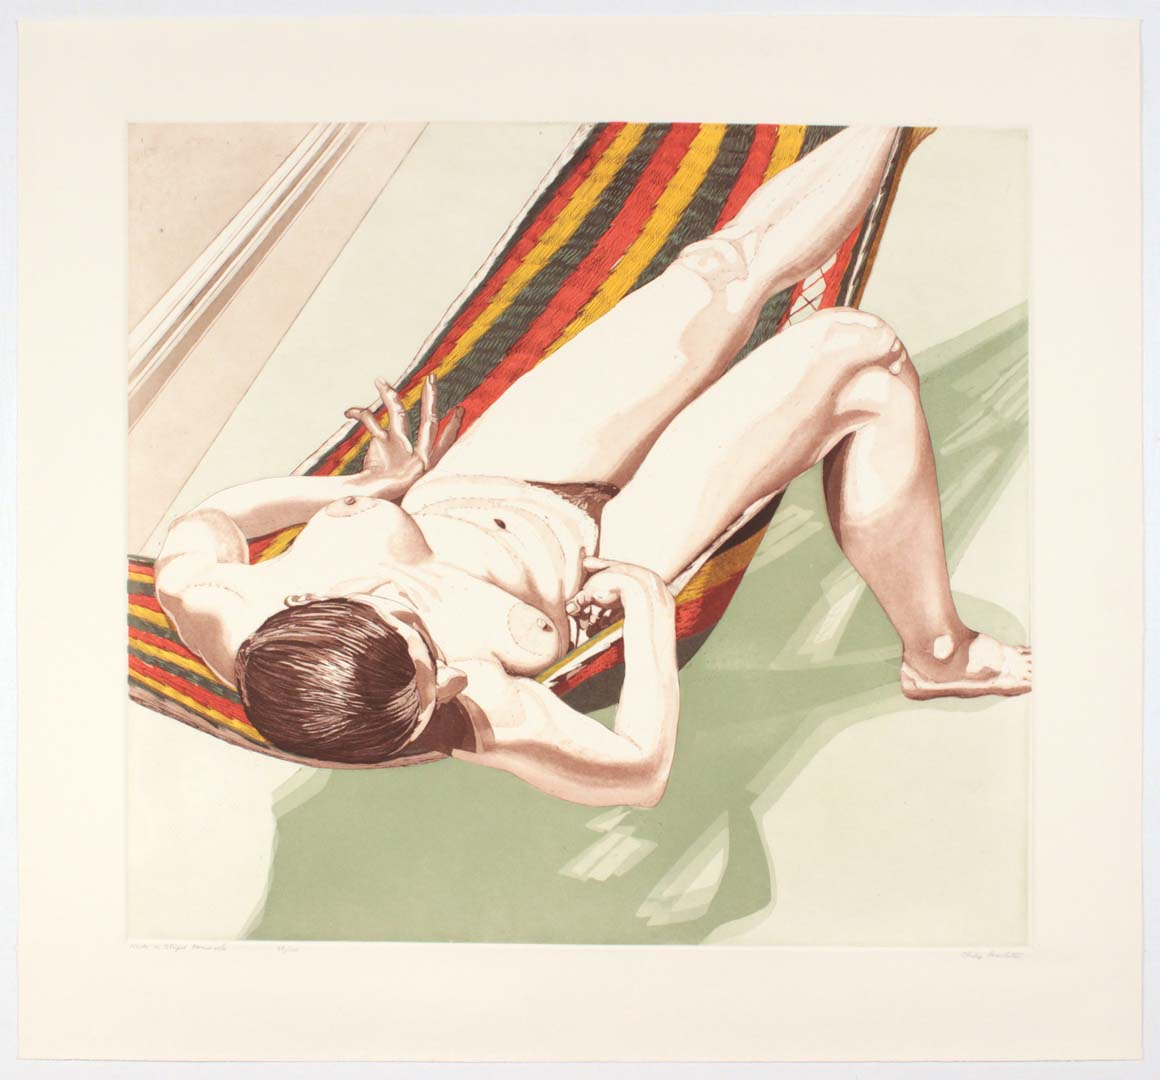 1974 Nude on Striped Hammock Aquatint Etching on Paper 30 x 32.25